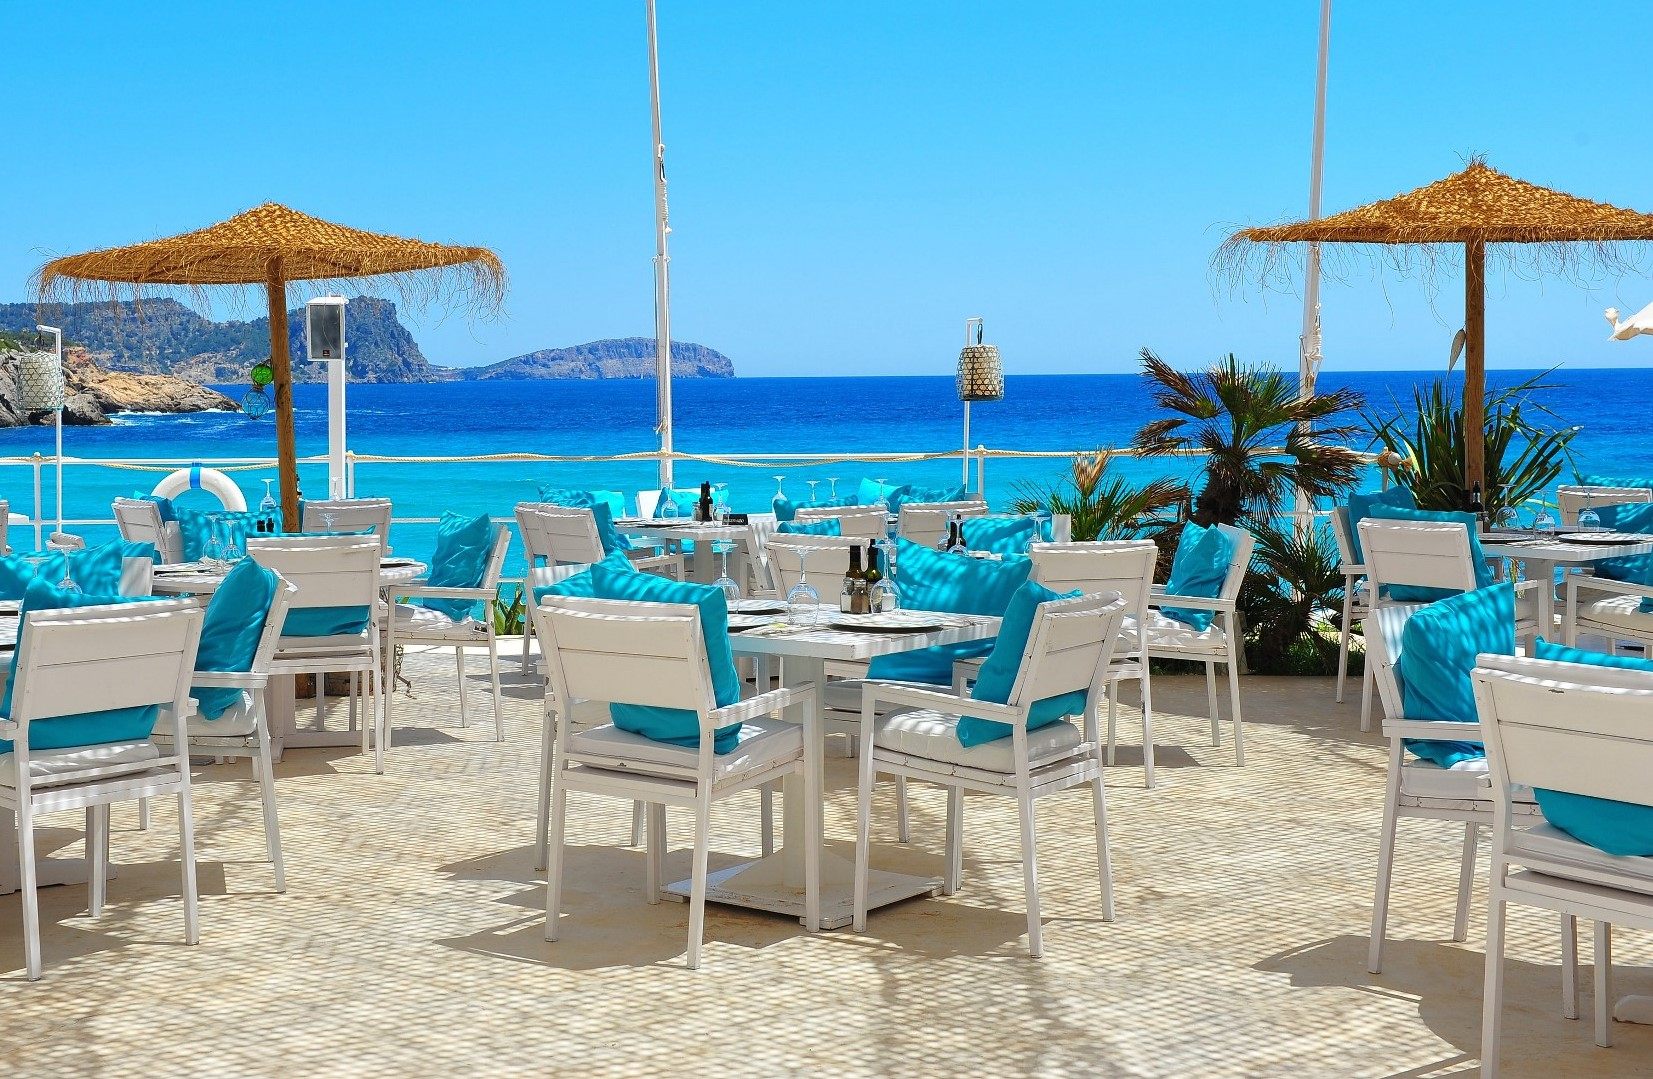 The most famous beach clubs & sunset bars in Ibiza – Part 3